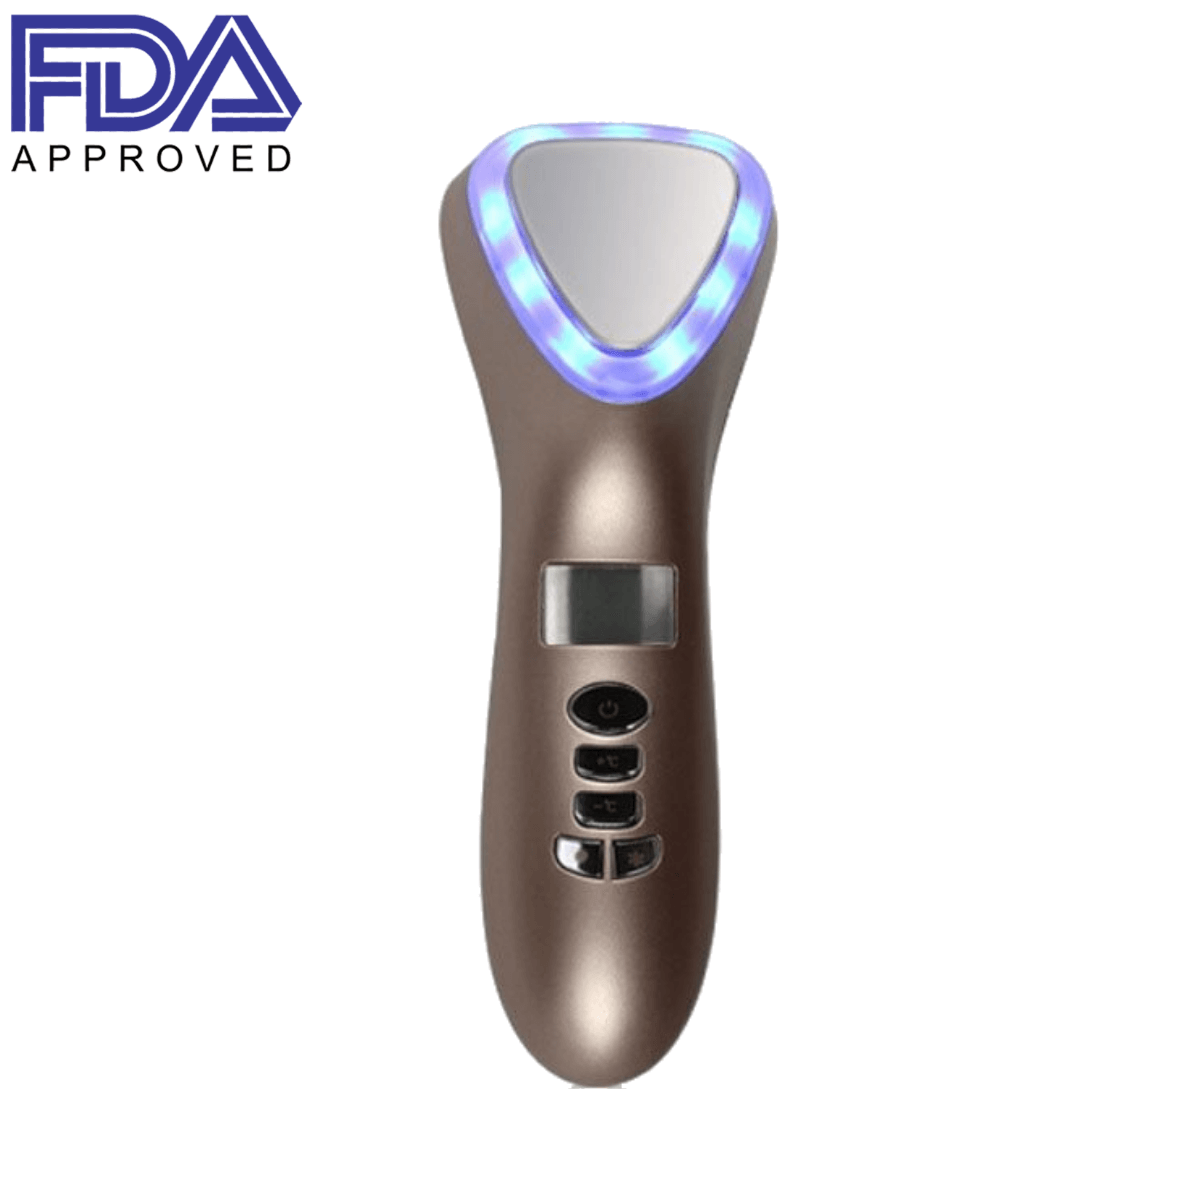 MiracleFace Premium Anti-Aging Device